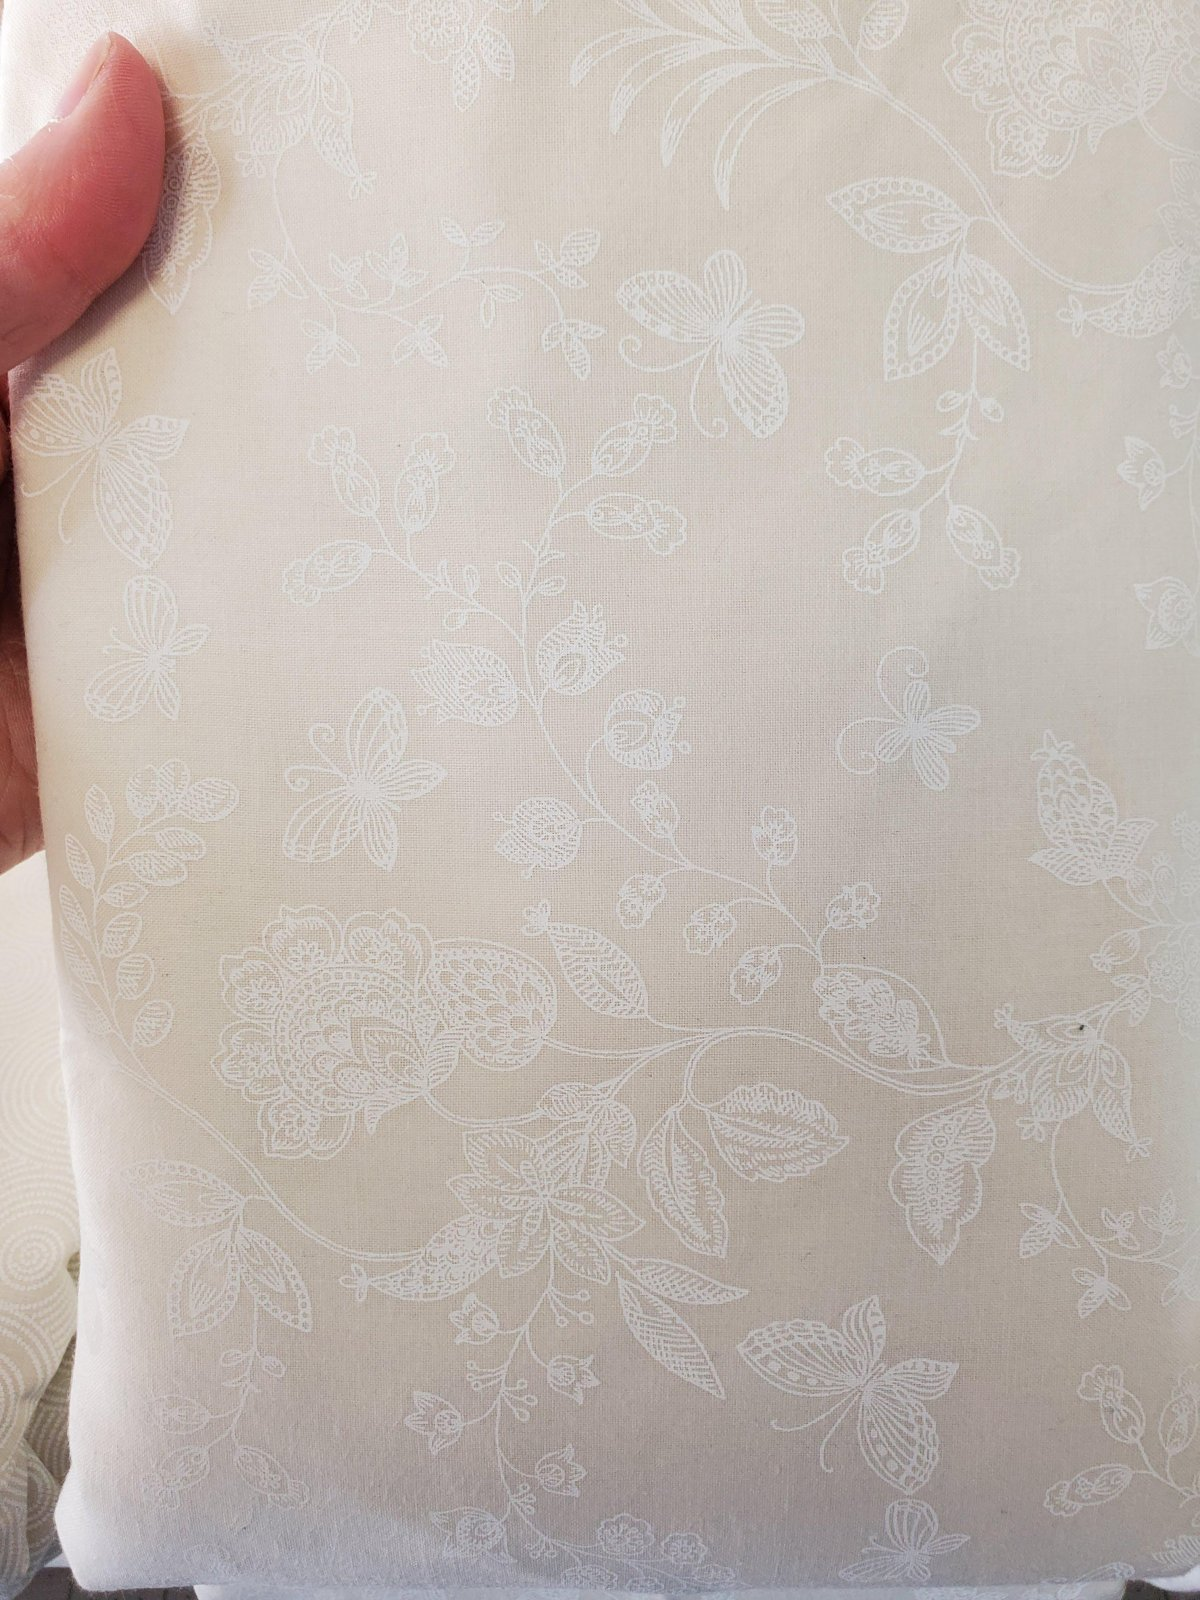 3 Yard Backing Piece: 108 Wide Vintage Butterflies White on Off-white  in a single 3 yard piece